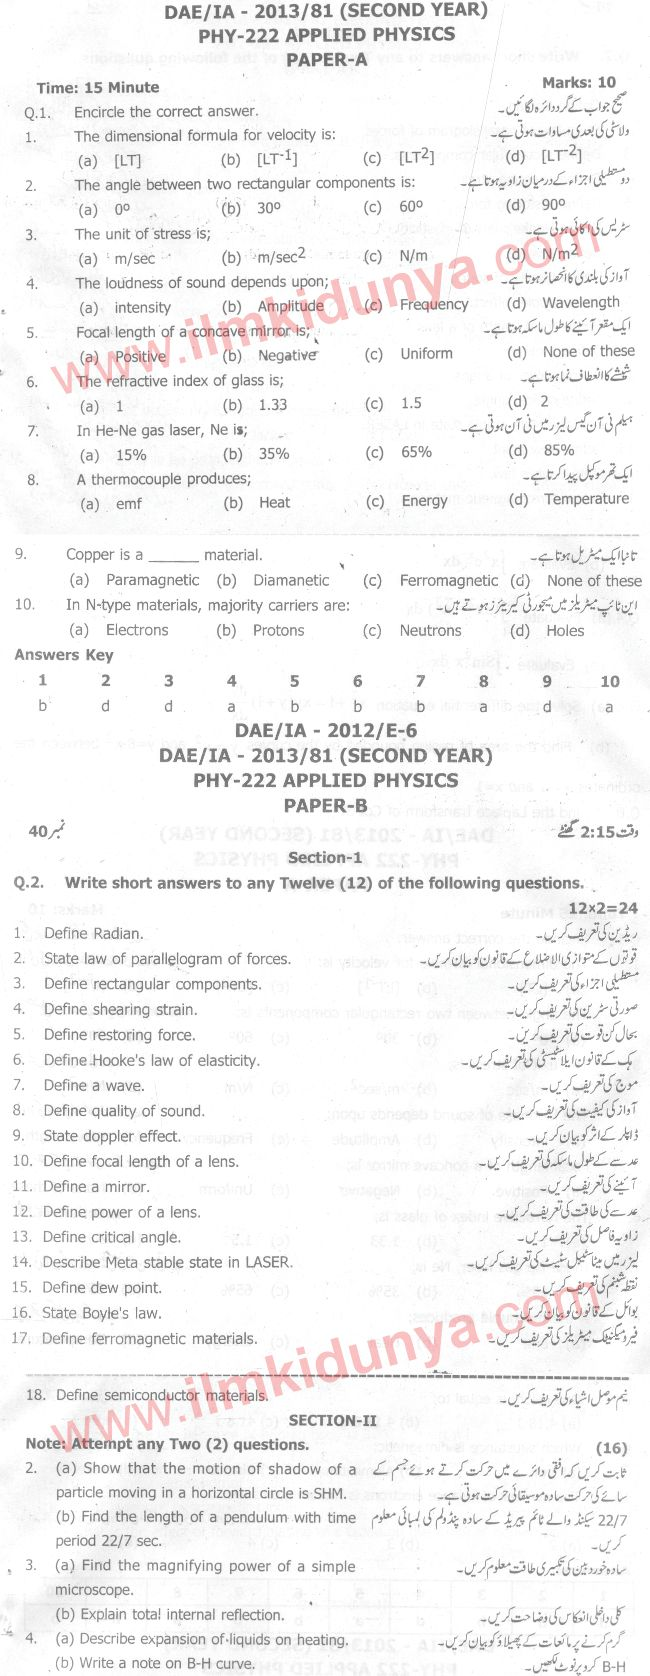 DAE IA 2013 Past Papers Electrical 2nd Year Phy 222 Applied